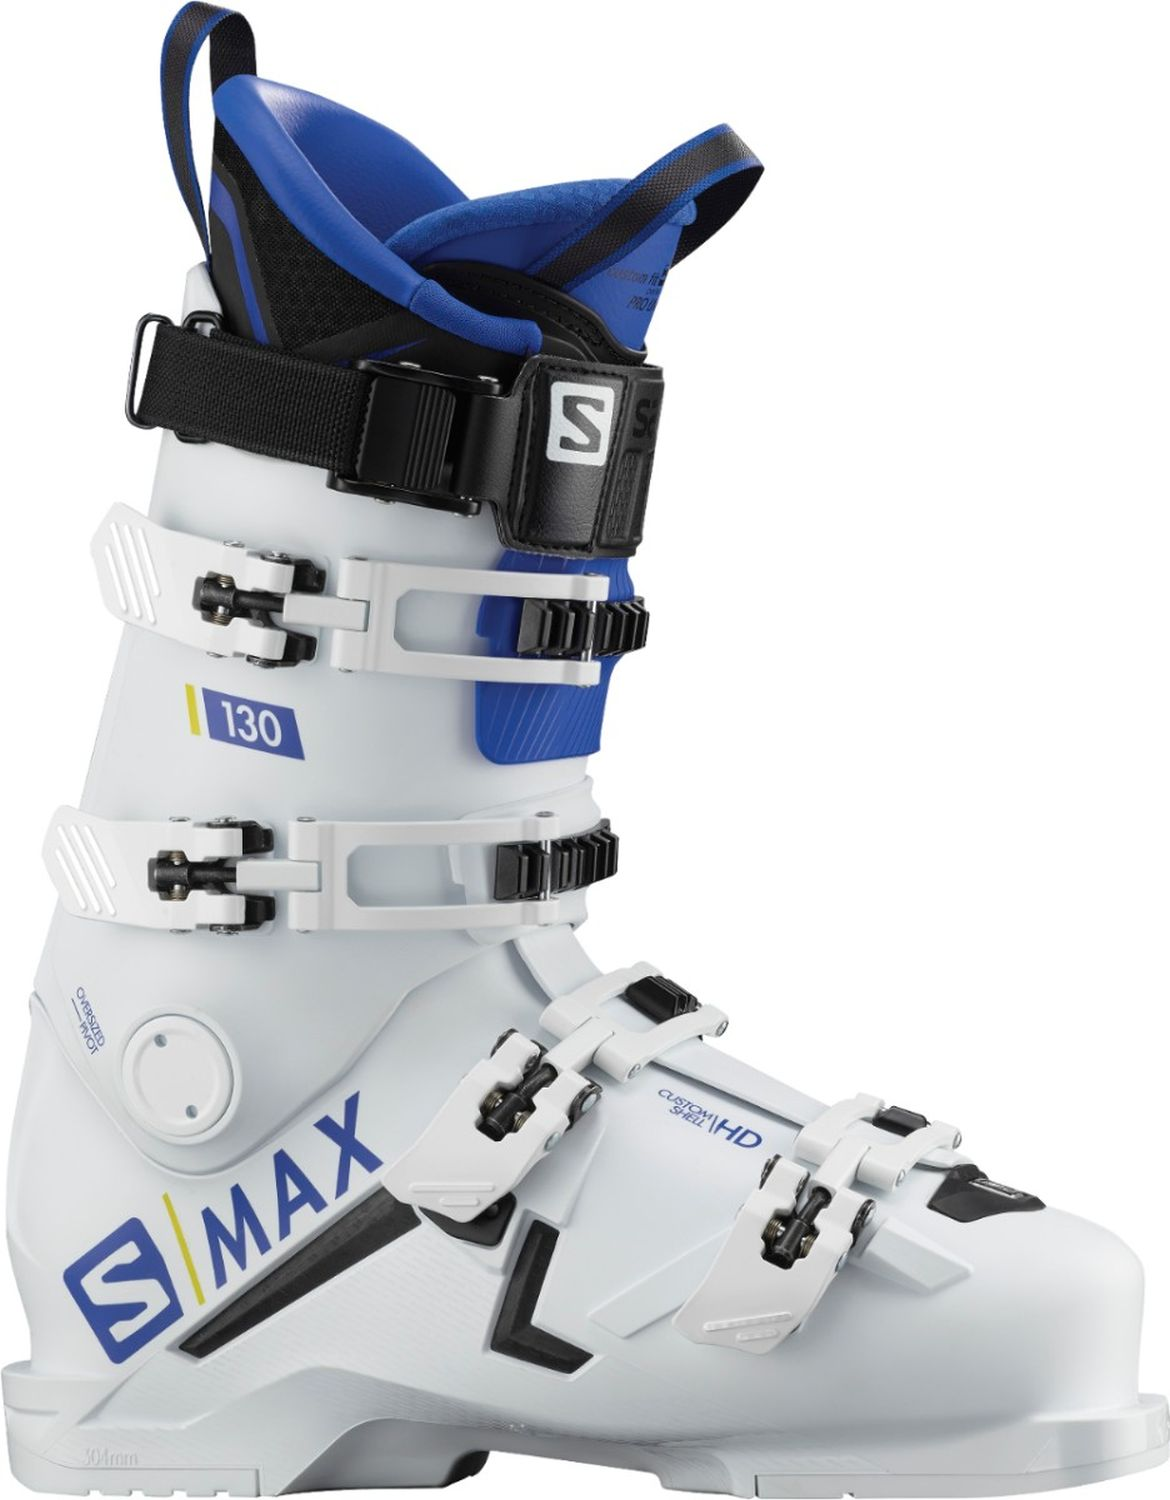 100% high quality online for sale recognized brands Salomon S/Max 130 Skischuhe (white/raceblue)